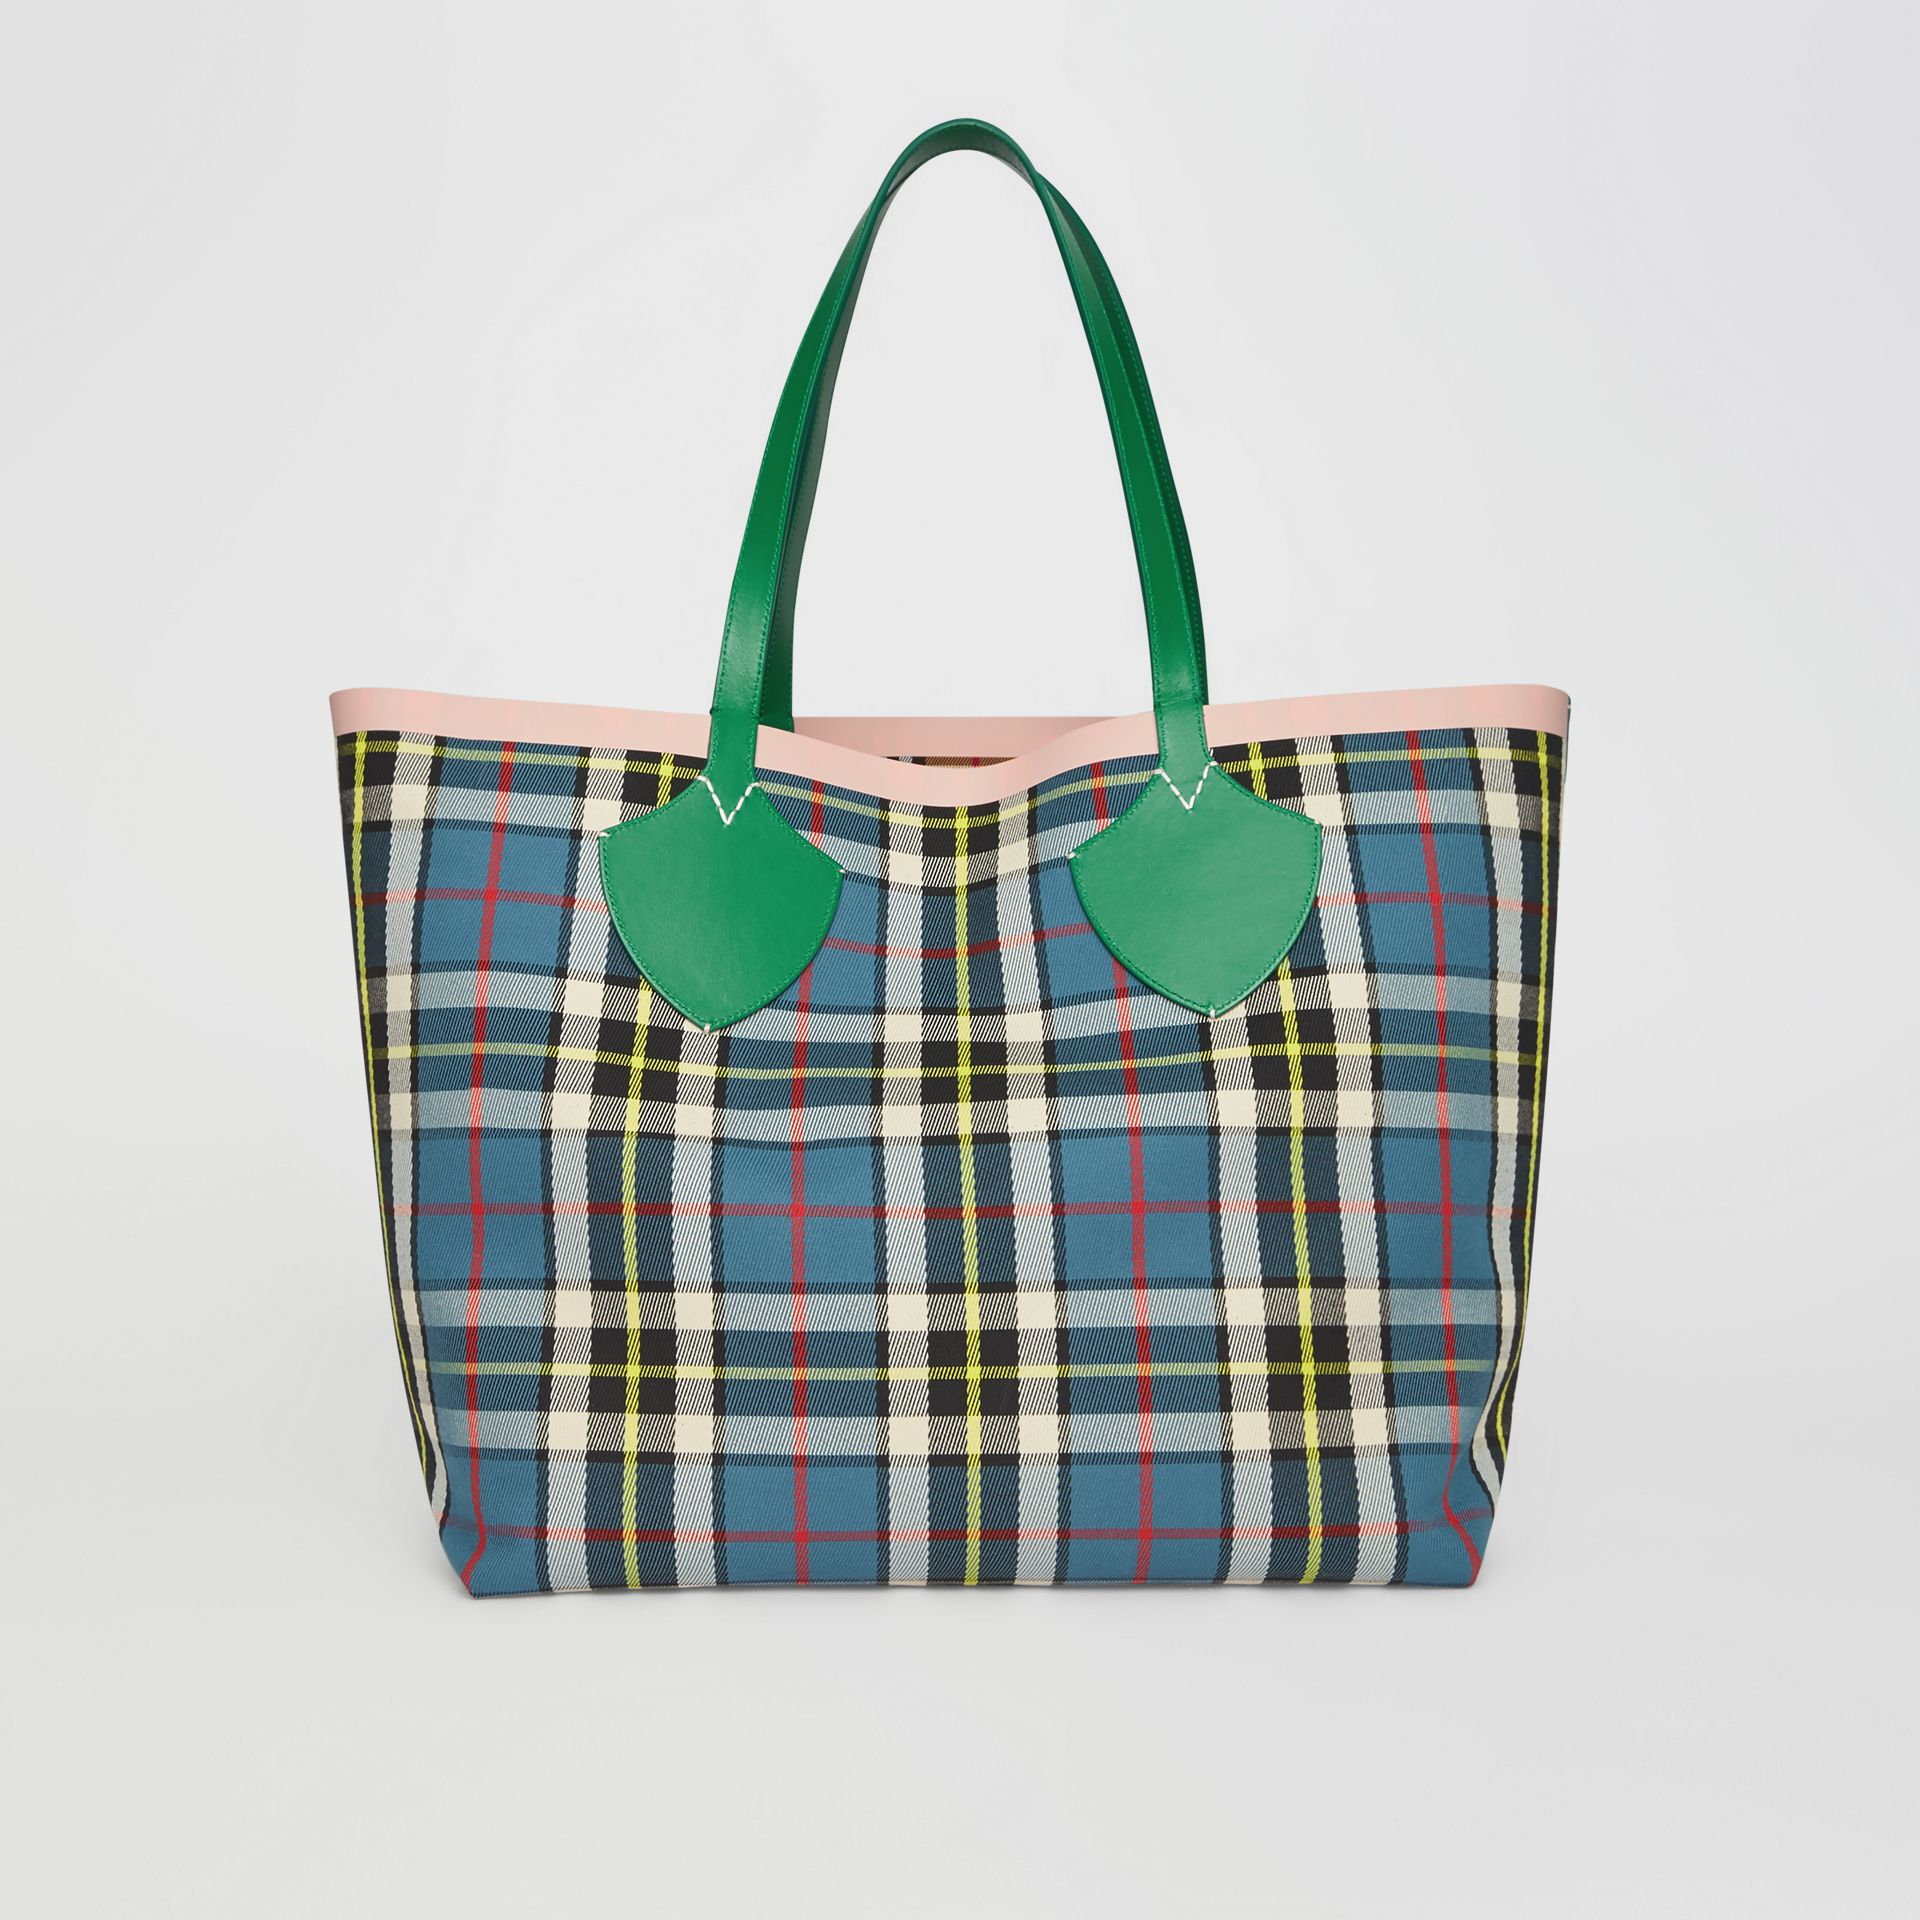 The Giant Reversible Tote in Vintage Check in Palm Green/pink Apricot - Women | Burberry Canada - gallery image 9